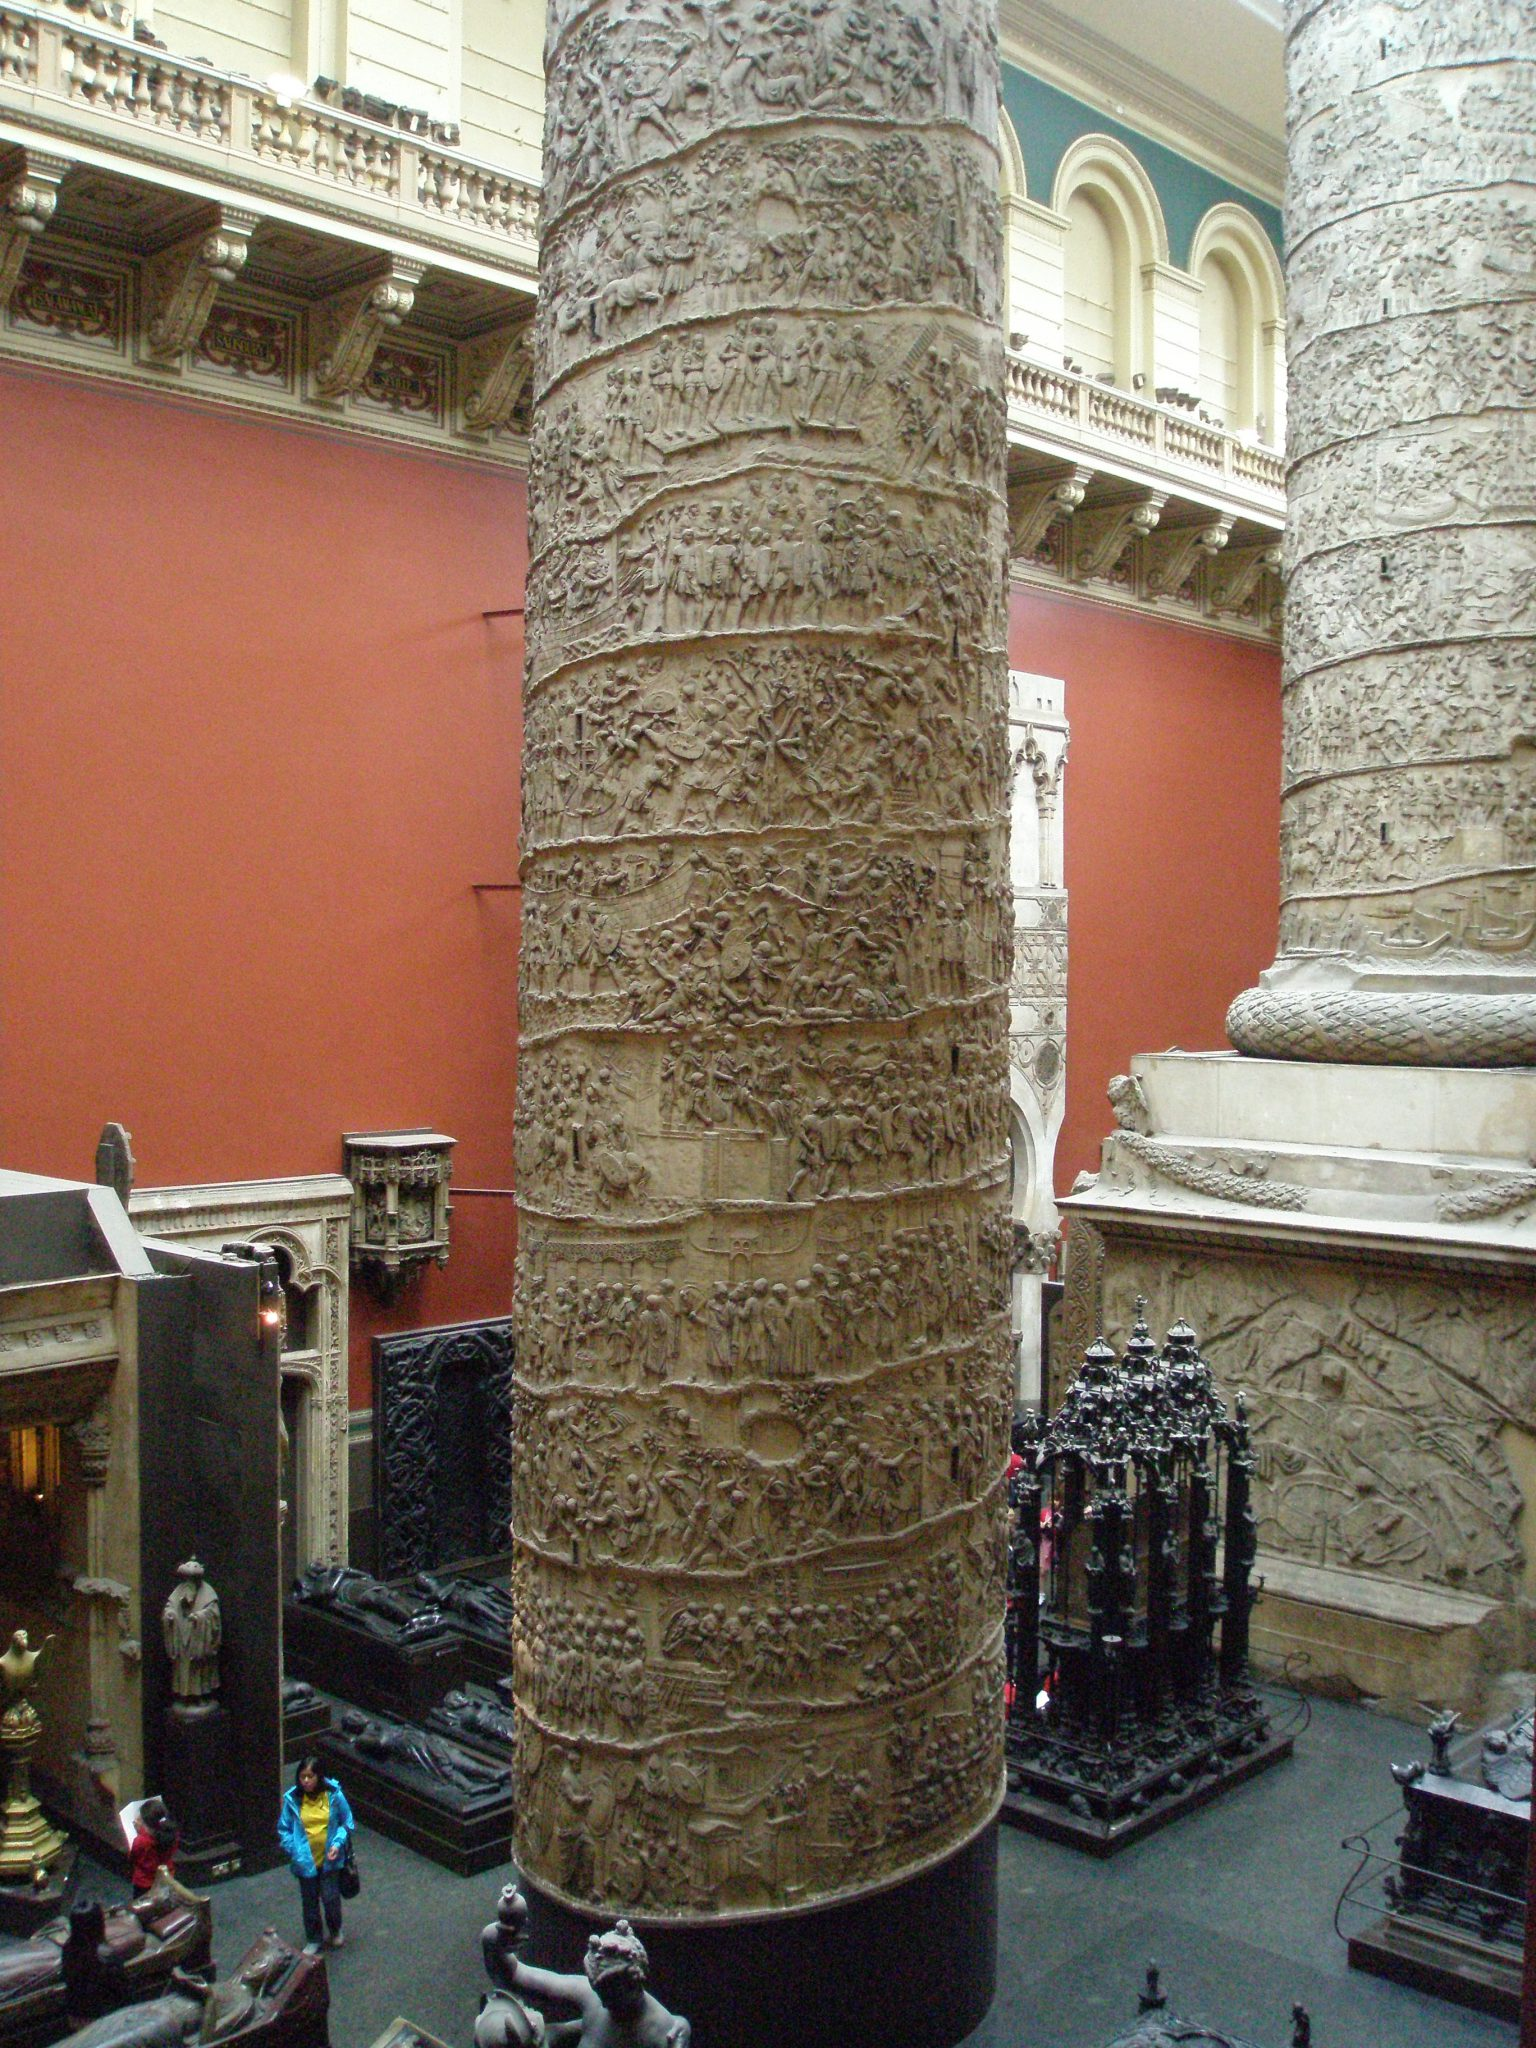 In the V&A Museum, the cast of Trajan's Column has been divided into two pieces, which makes the enormity of the Romans' Victory Columns even more apparent. The Cast Court Galleries were opened in 1873. From the Museum's 2nd floor balcony vantage point, one can see the top-most portions of the columns, up close.